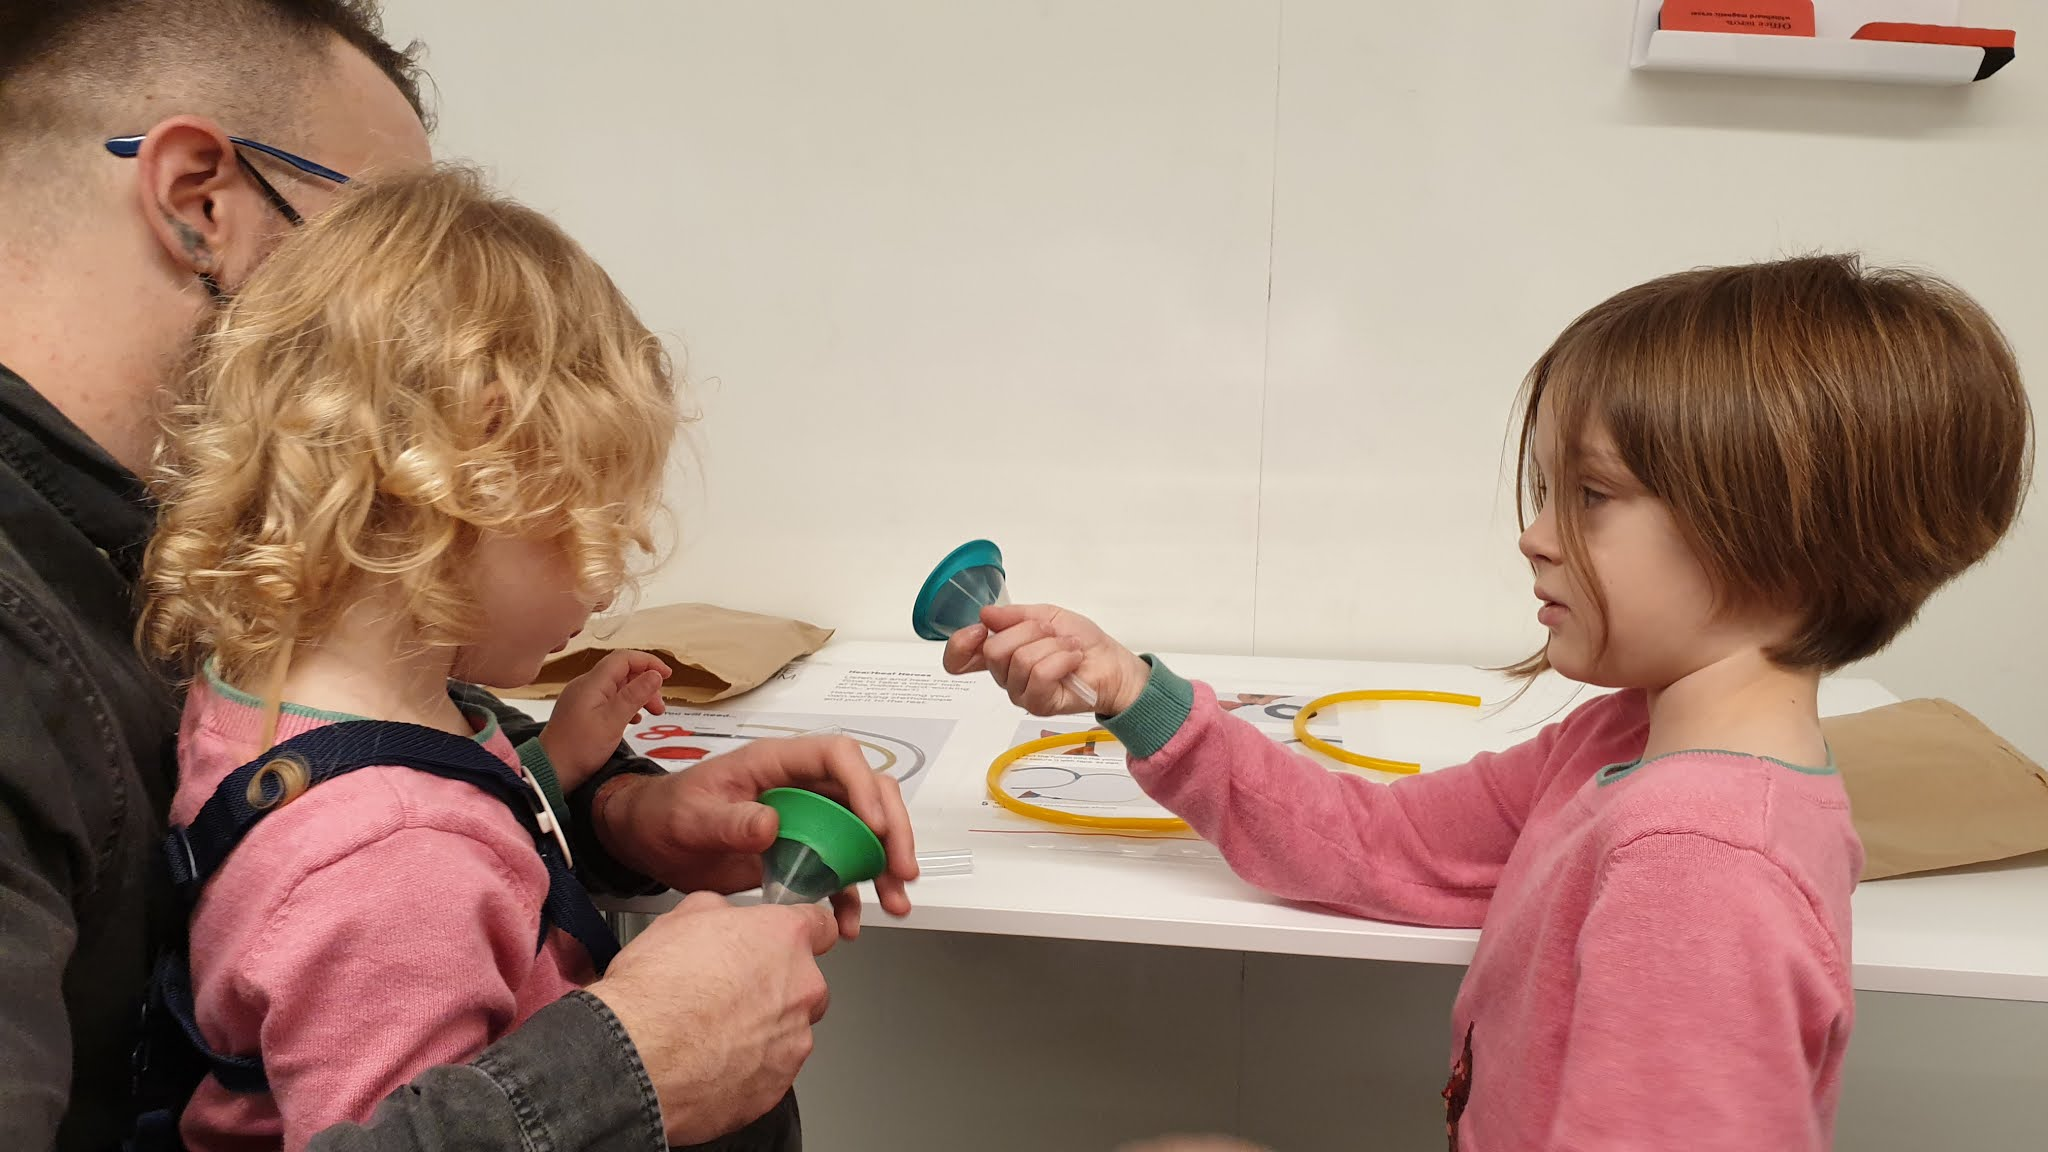 two kids making a stethoscope craft